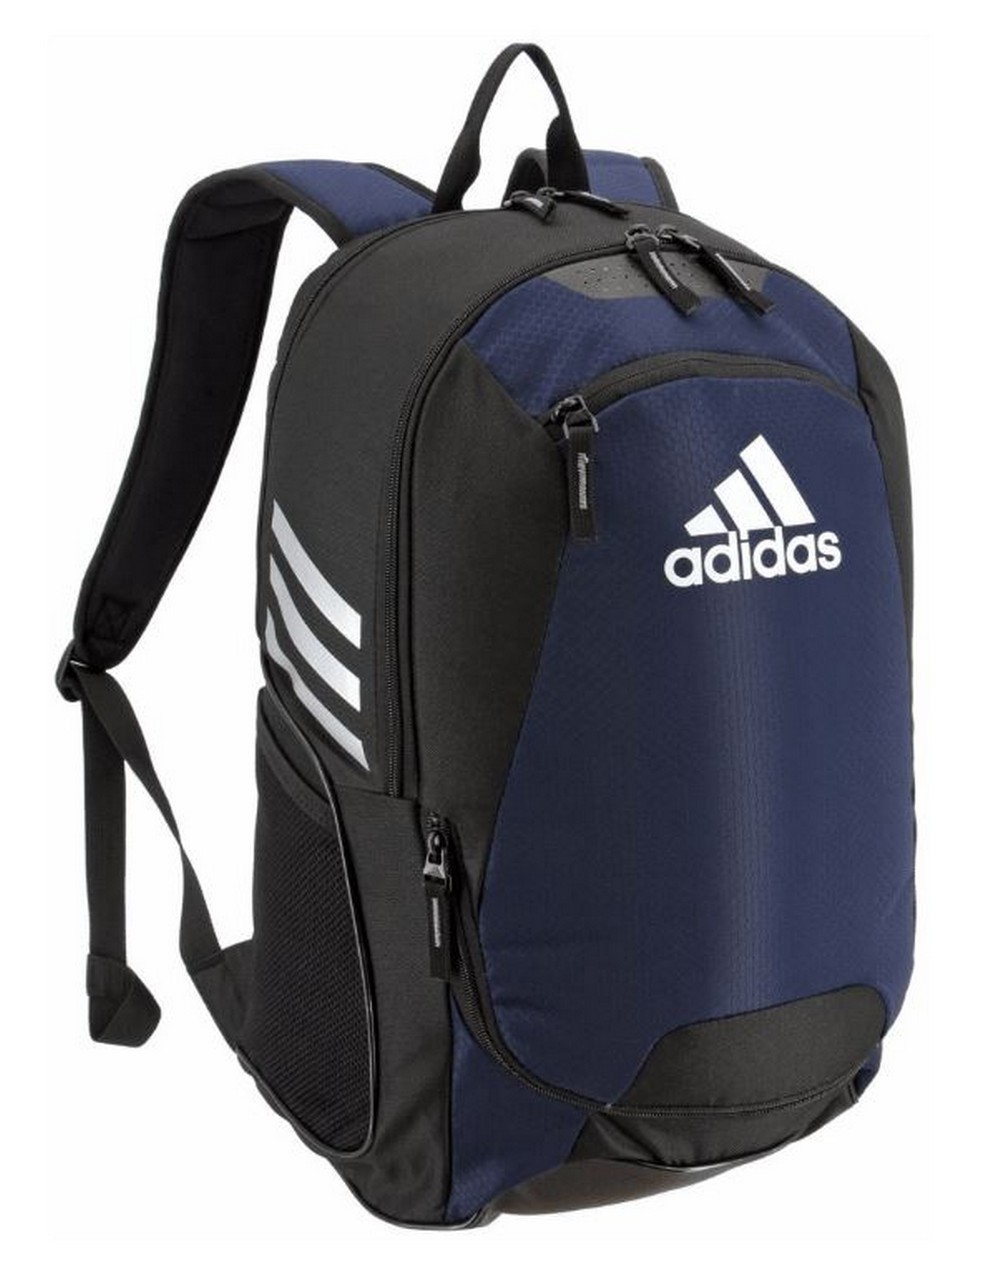 Adidas Stadium II Backpack Fits Soccer Ball Sport Bag 4 ... - photo#21